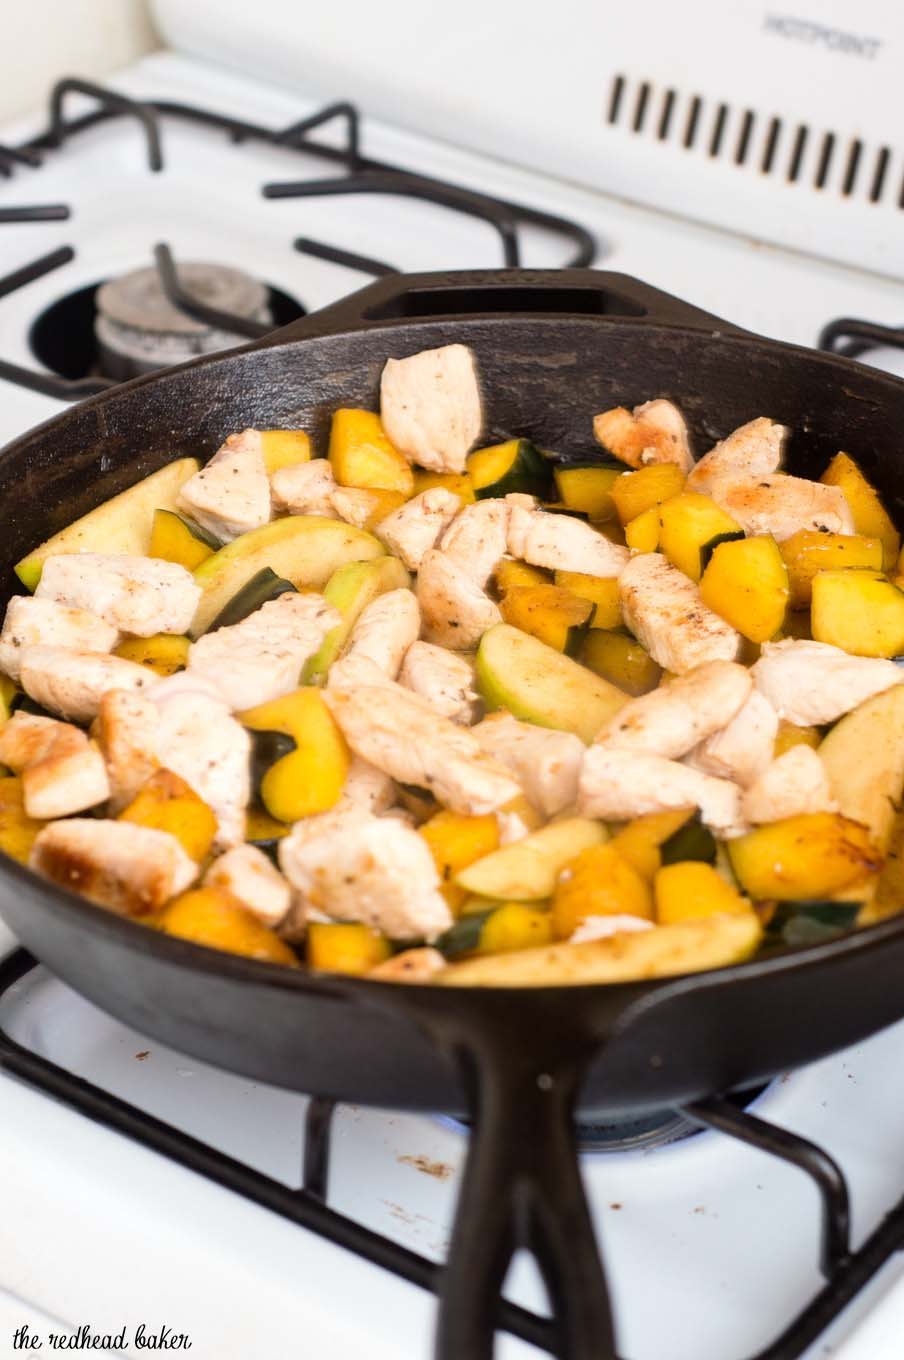 This apple, squash and chicken skillet meal is perfect for busy weeknights: ready in under 30 minutes, and only one pan to wash! #SundaySupper